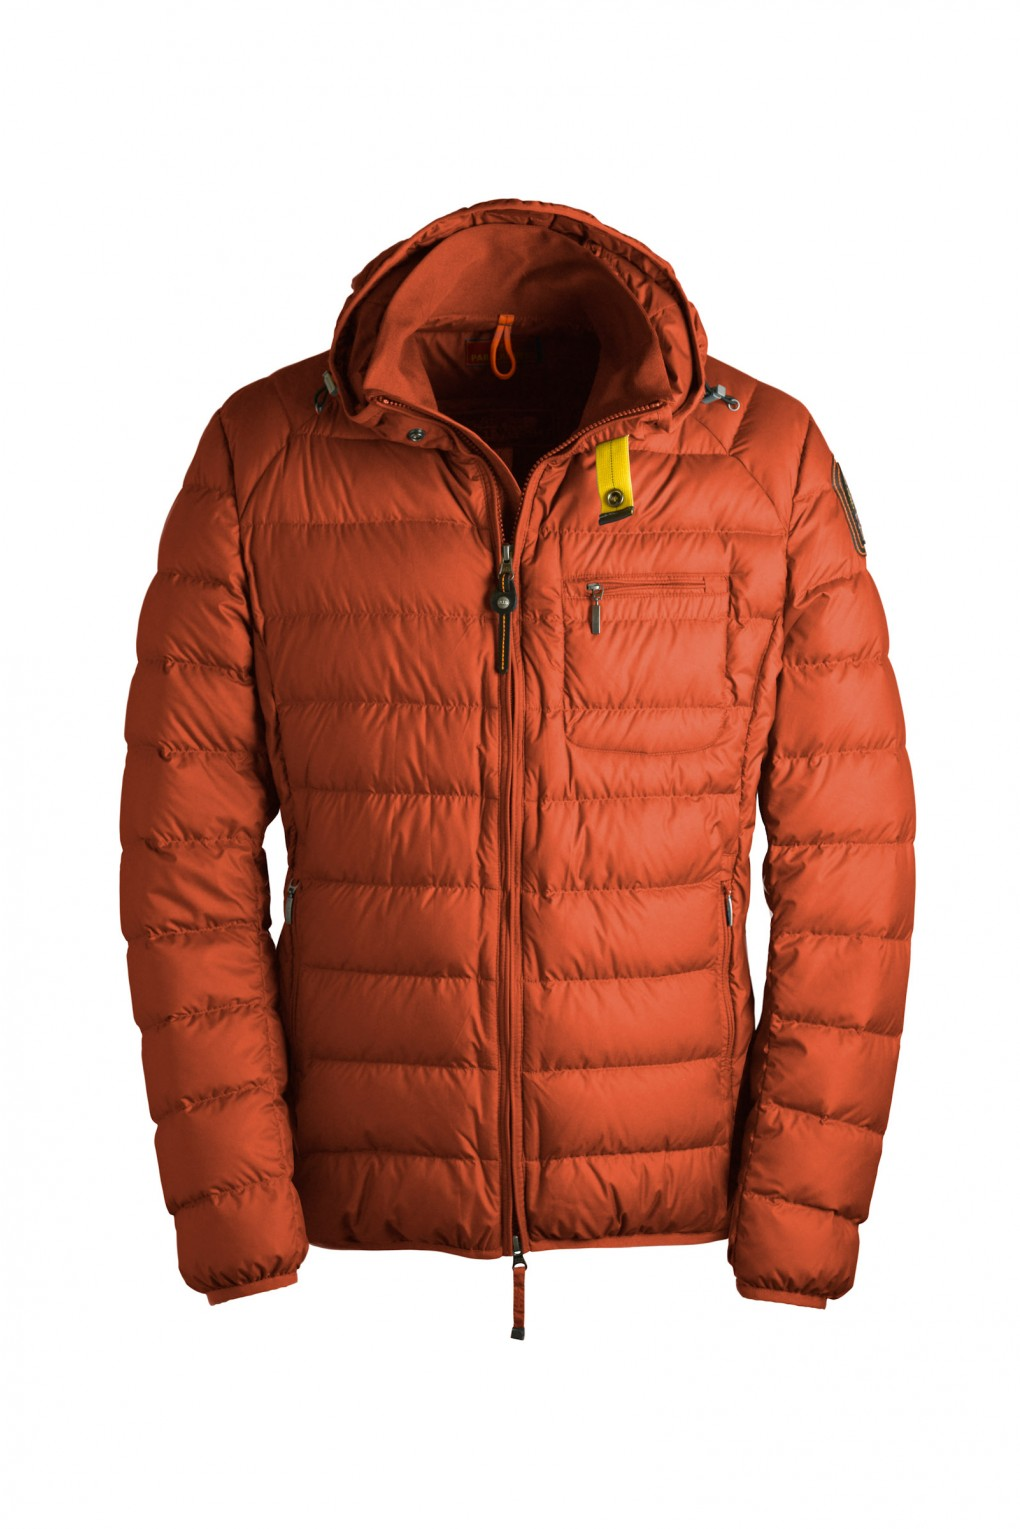 parajumpers LAST MINUTE man outerwear Orange